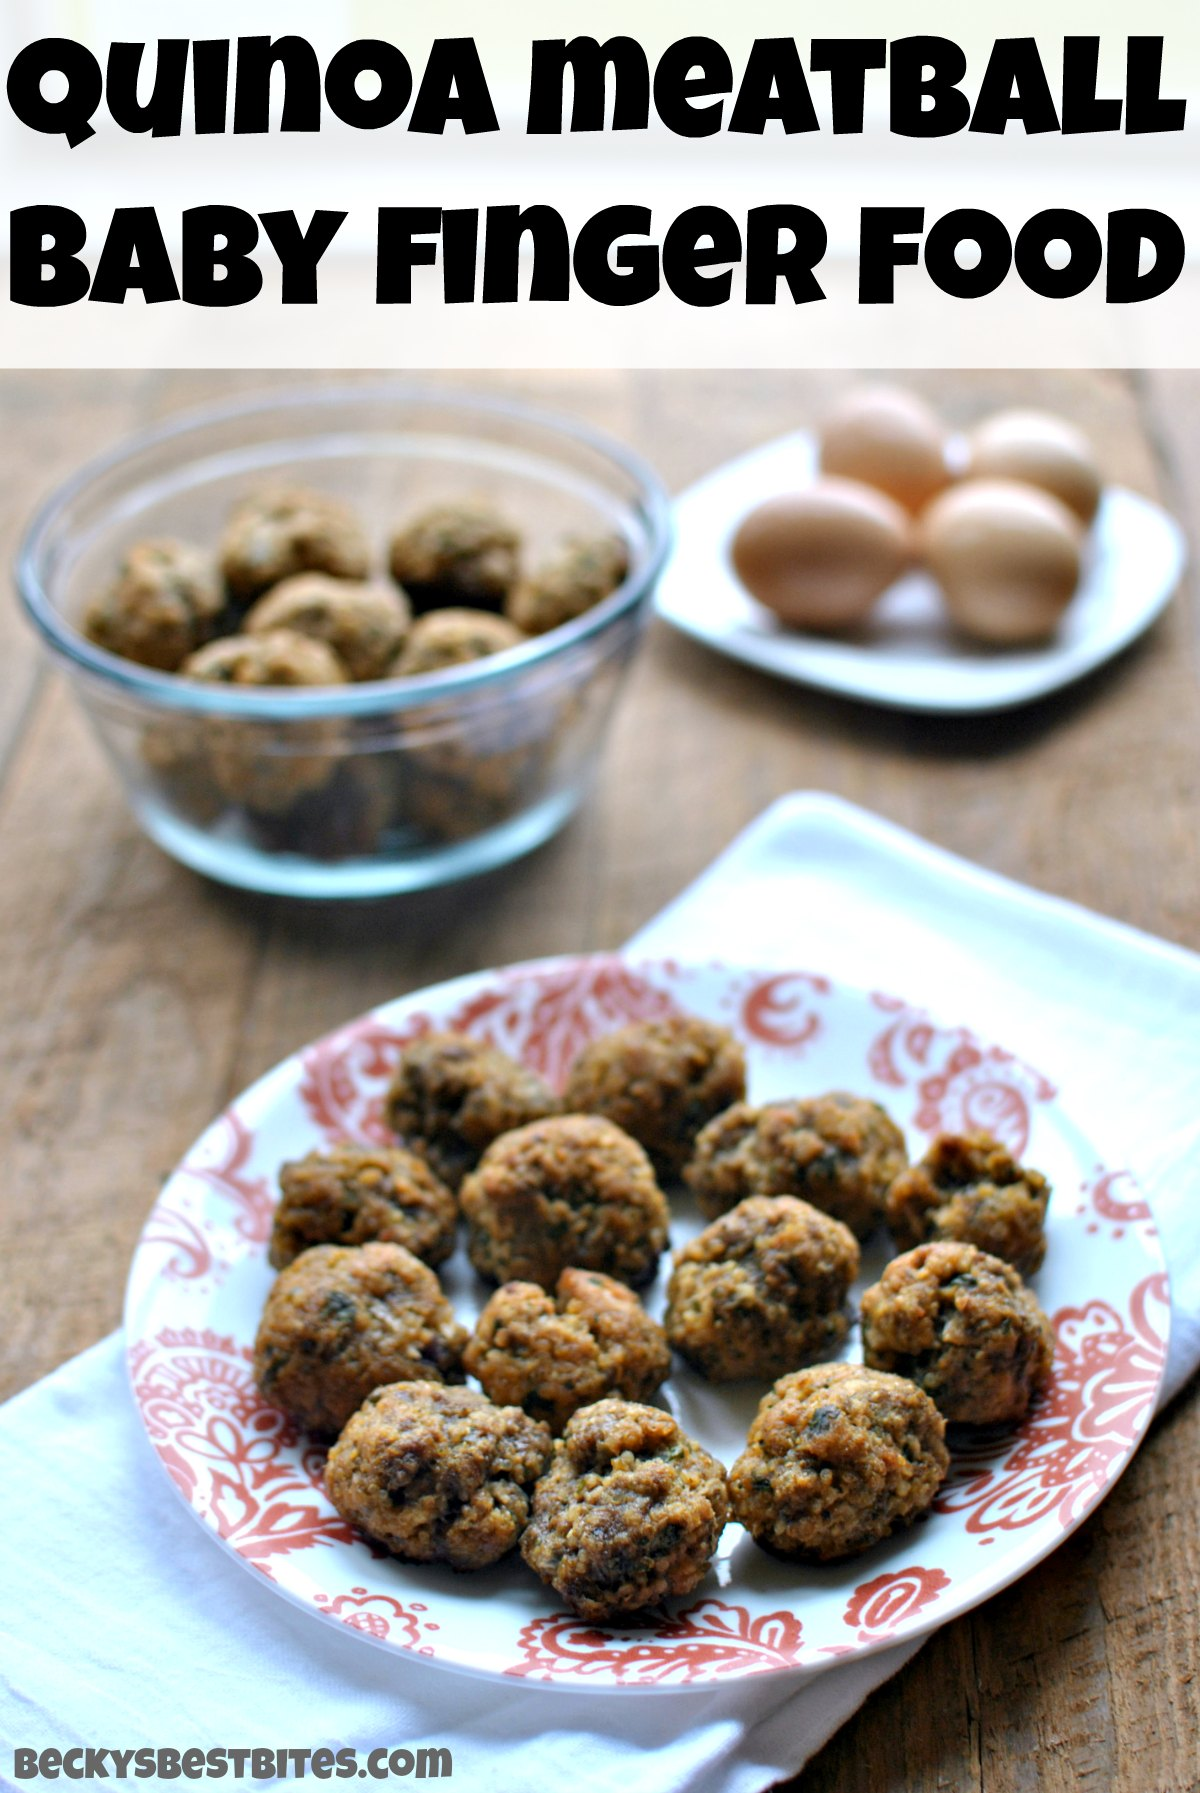 Quinoa meatballs baby finger food beckys best bites quinoa meatballs baby finger food is a protein packed wonderfully nutritious finger food for older forumfinder Choice Image